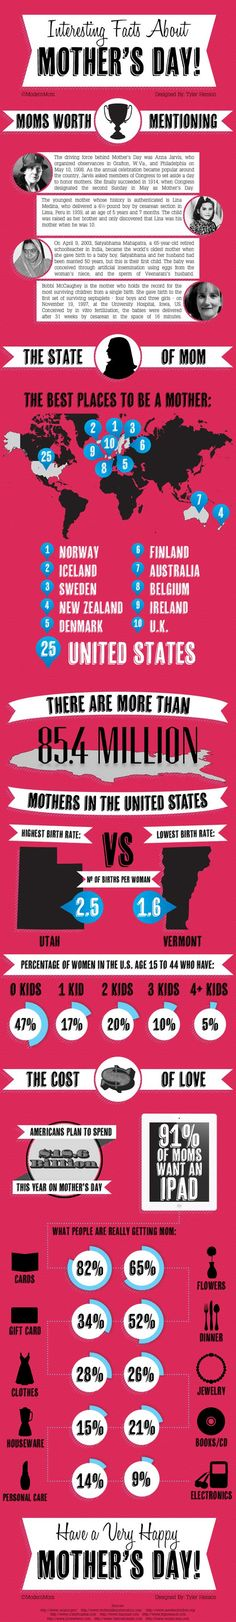 Interesting Facts About Mother's Day! [Infographic]